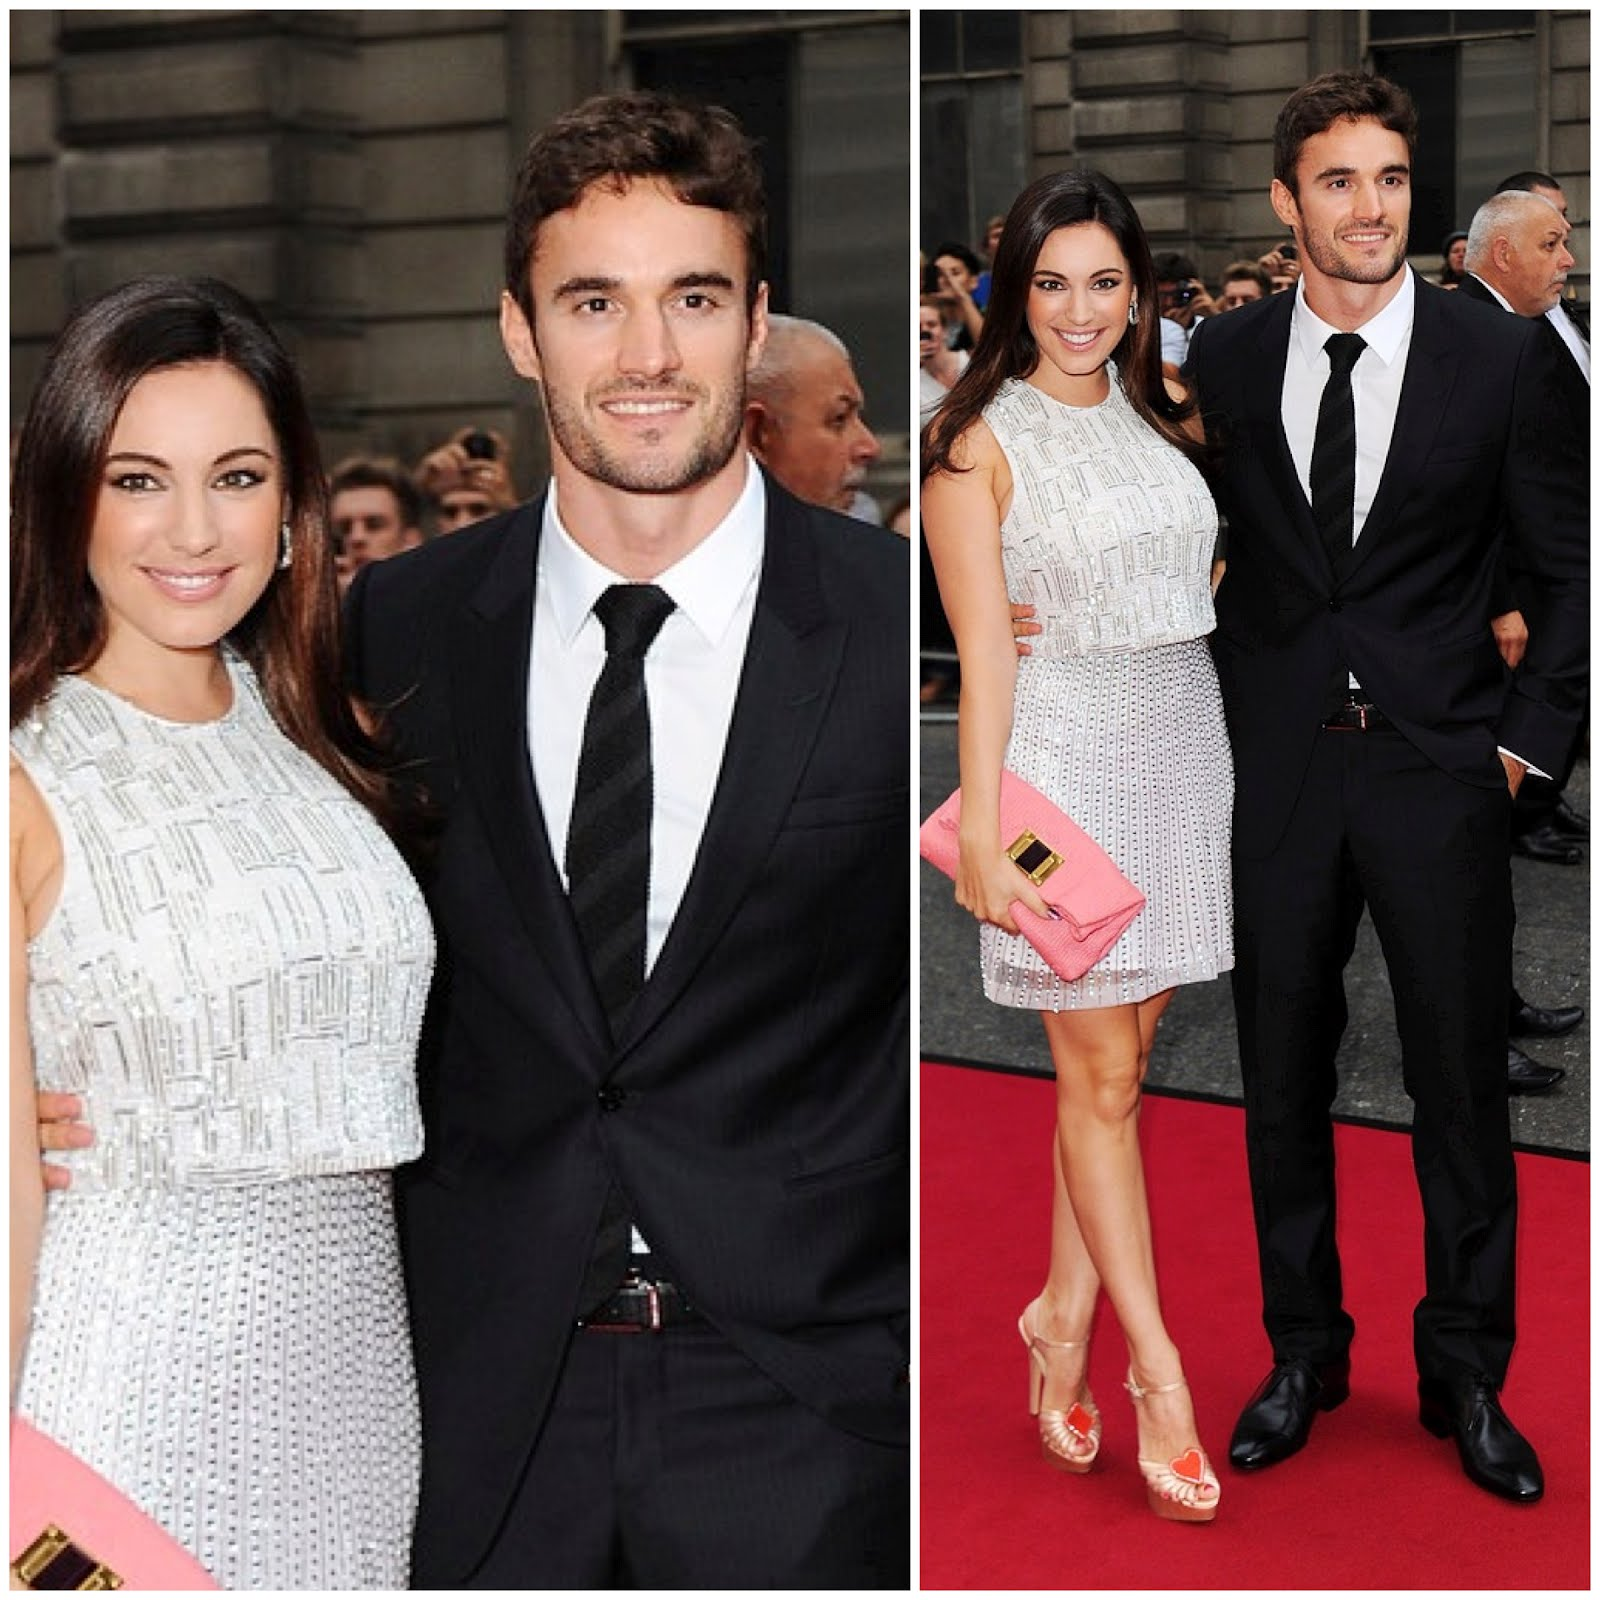 00O00 London Menswear Blog Kelly Brook with boyfriend Thom Evans attends the GQ Men of the Year Awards 2012 at The Royal Opera House on September 4, 2012 in London, England.